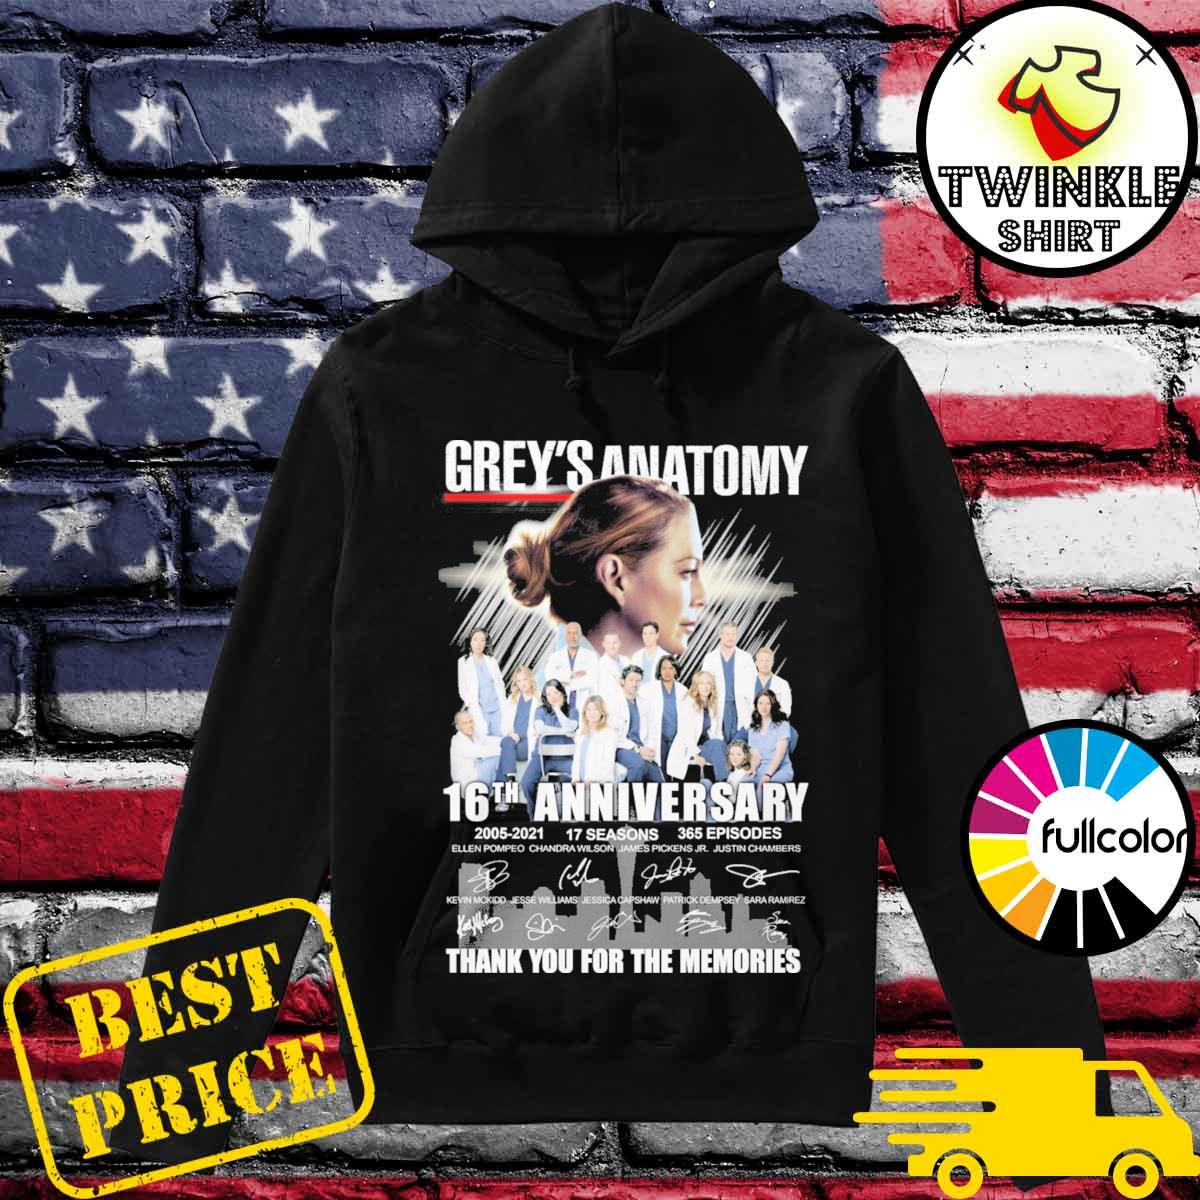 Thank You For The Memories Of Grey's Anatomy 16th Anniversary 2005 2021 17 Seasons 365 Episodes Signatures Shirt Hoodie